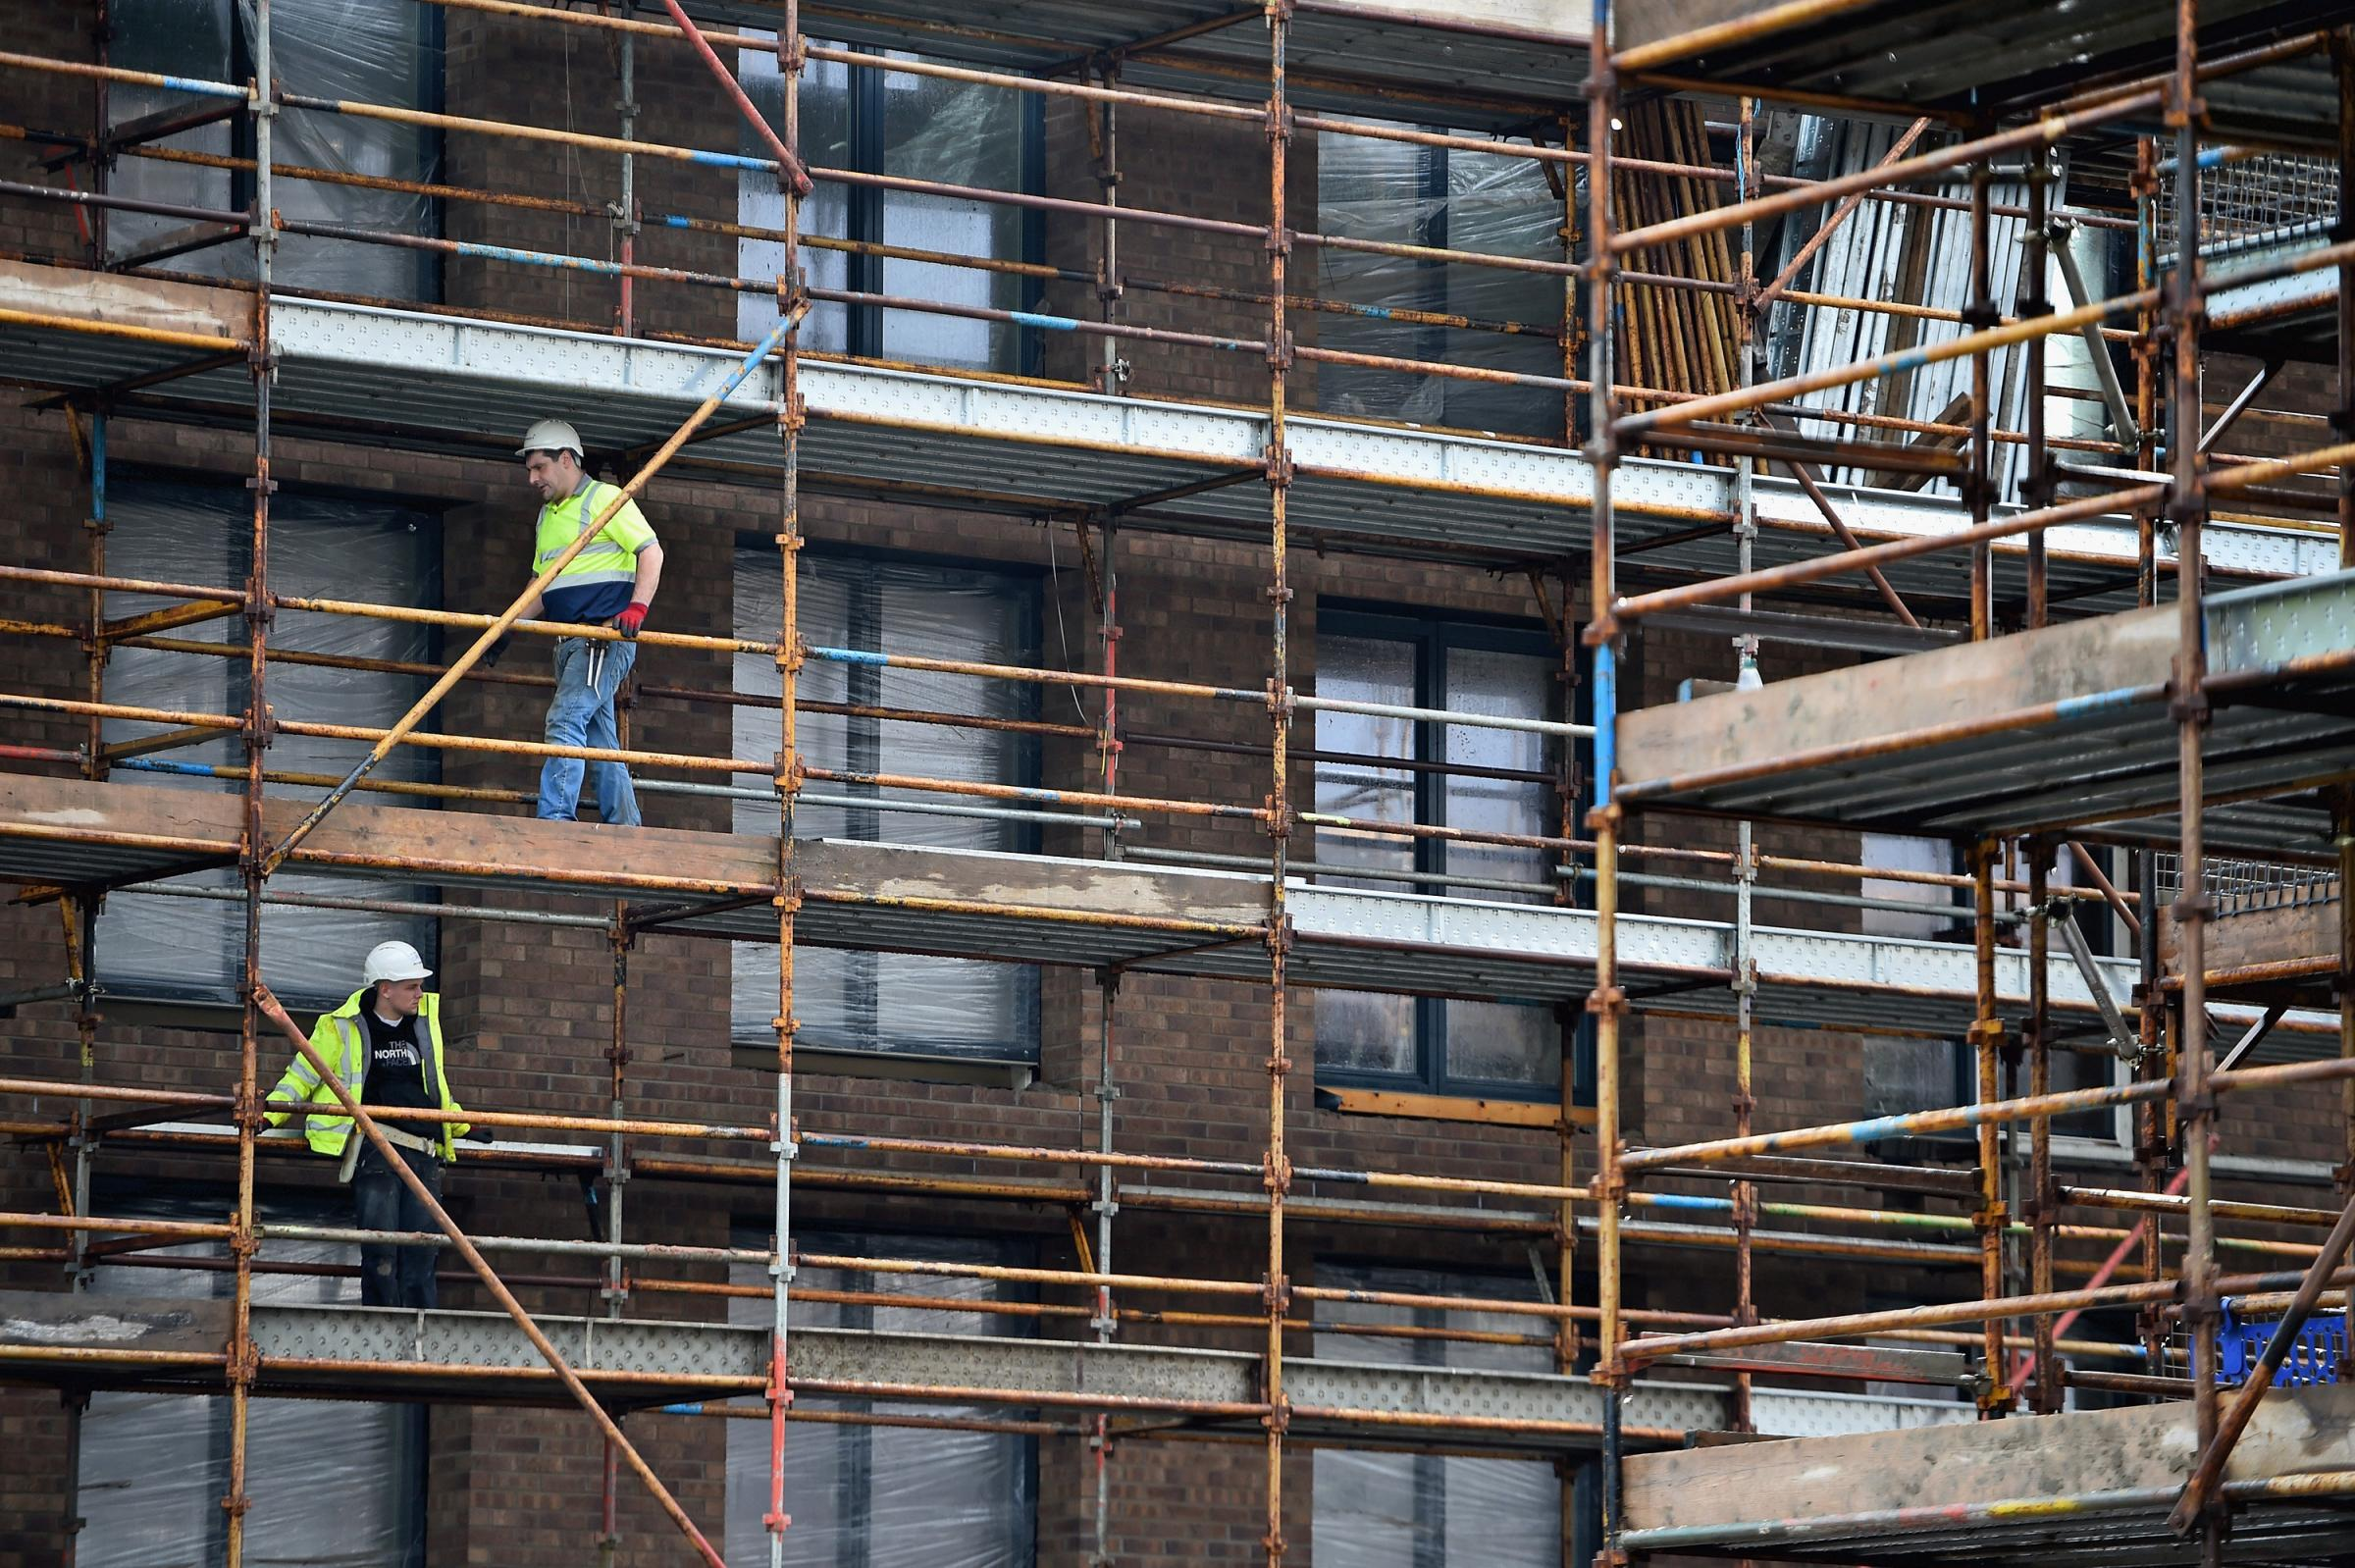 The UK's construction sector felt the impact of Brexit uncertainty